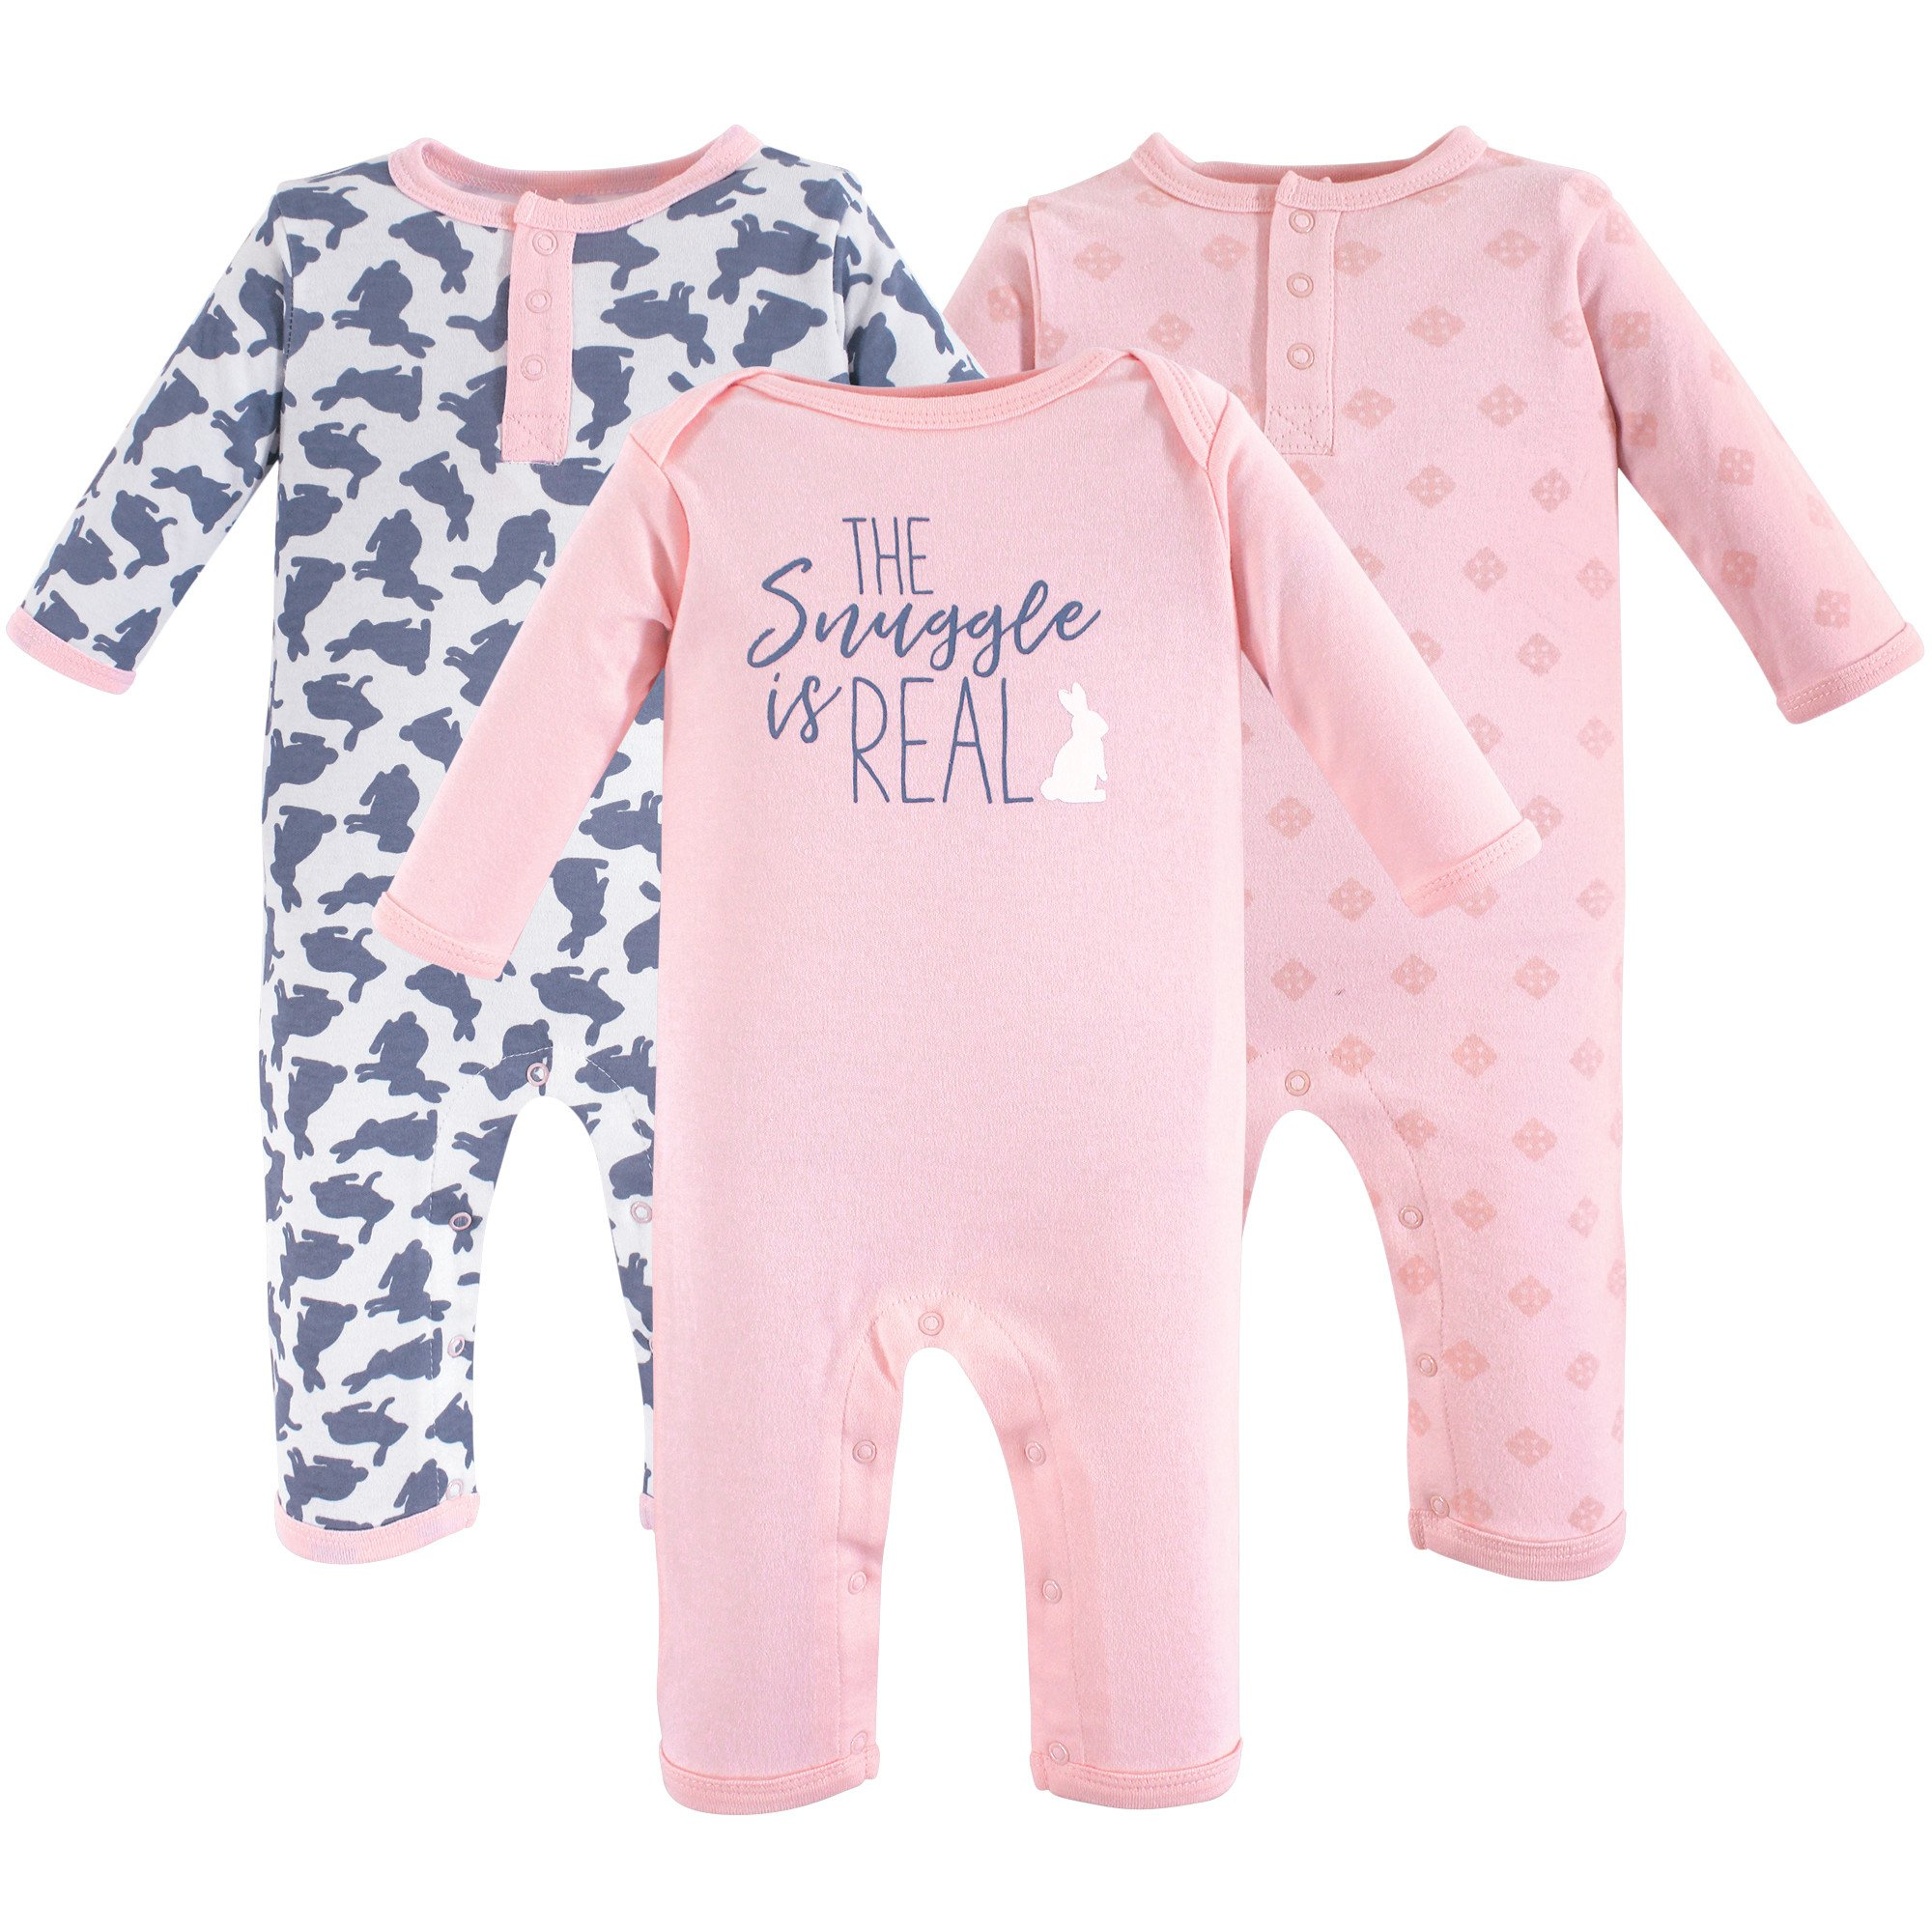 Yoga Sprout Baby Cotton Union Suit, Snuggle Bunny